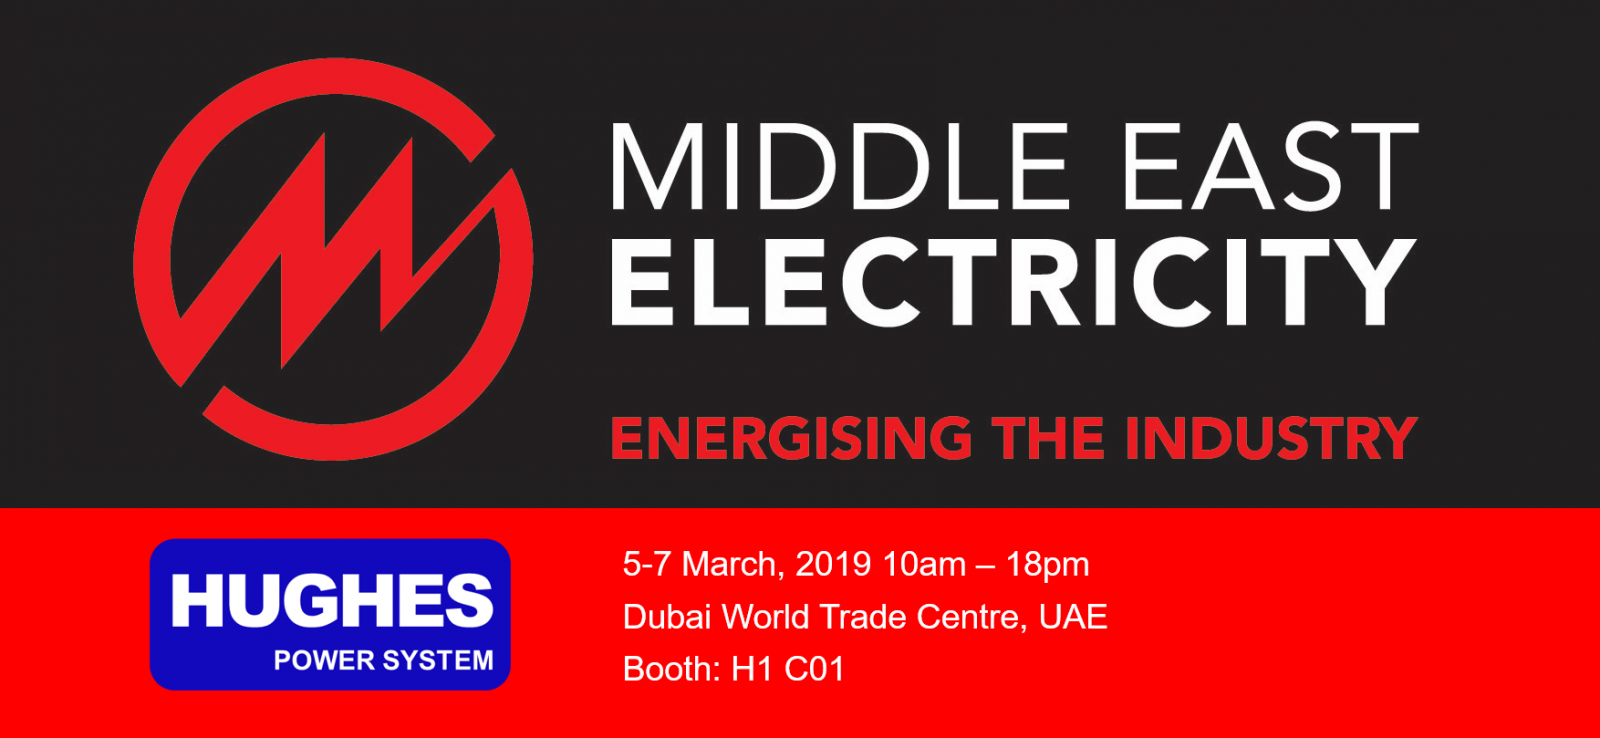 Hughes Power System will participate in MEE exhibition on 5-7th March, 2019, Dubai.